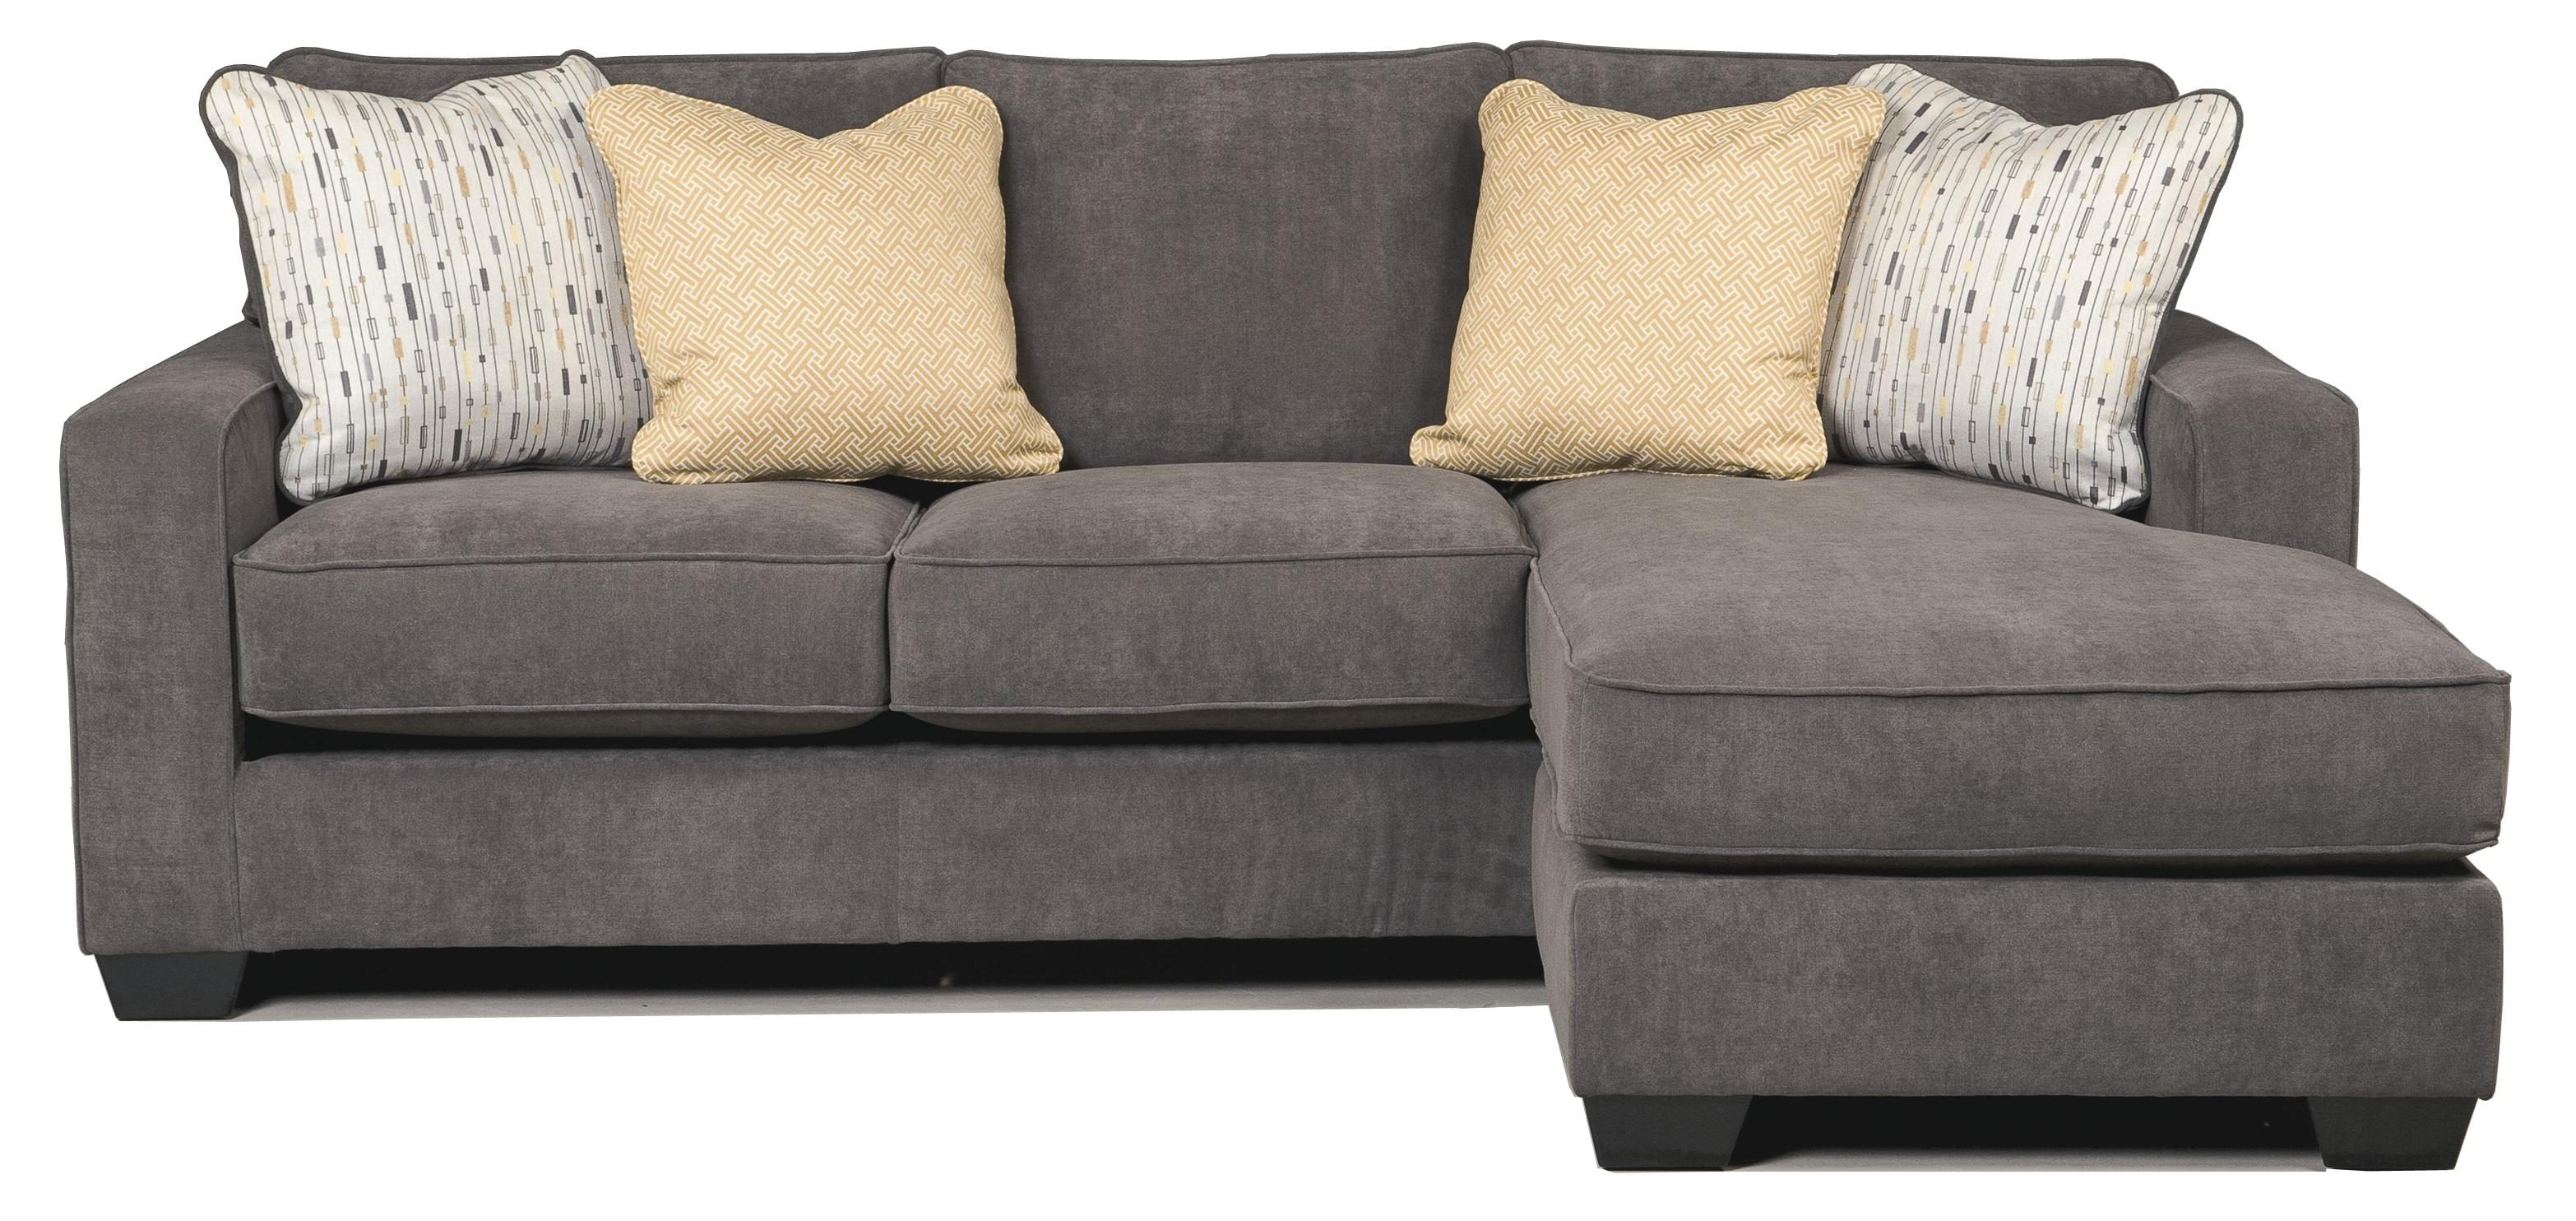 Harper Contemporary Sofa Chaise With Track Arms & Left Or Right Pertaining To Harper Foam 3 Piece Sectionals With Raf Chaise (Image 5 of 25)